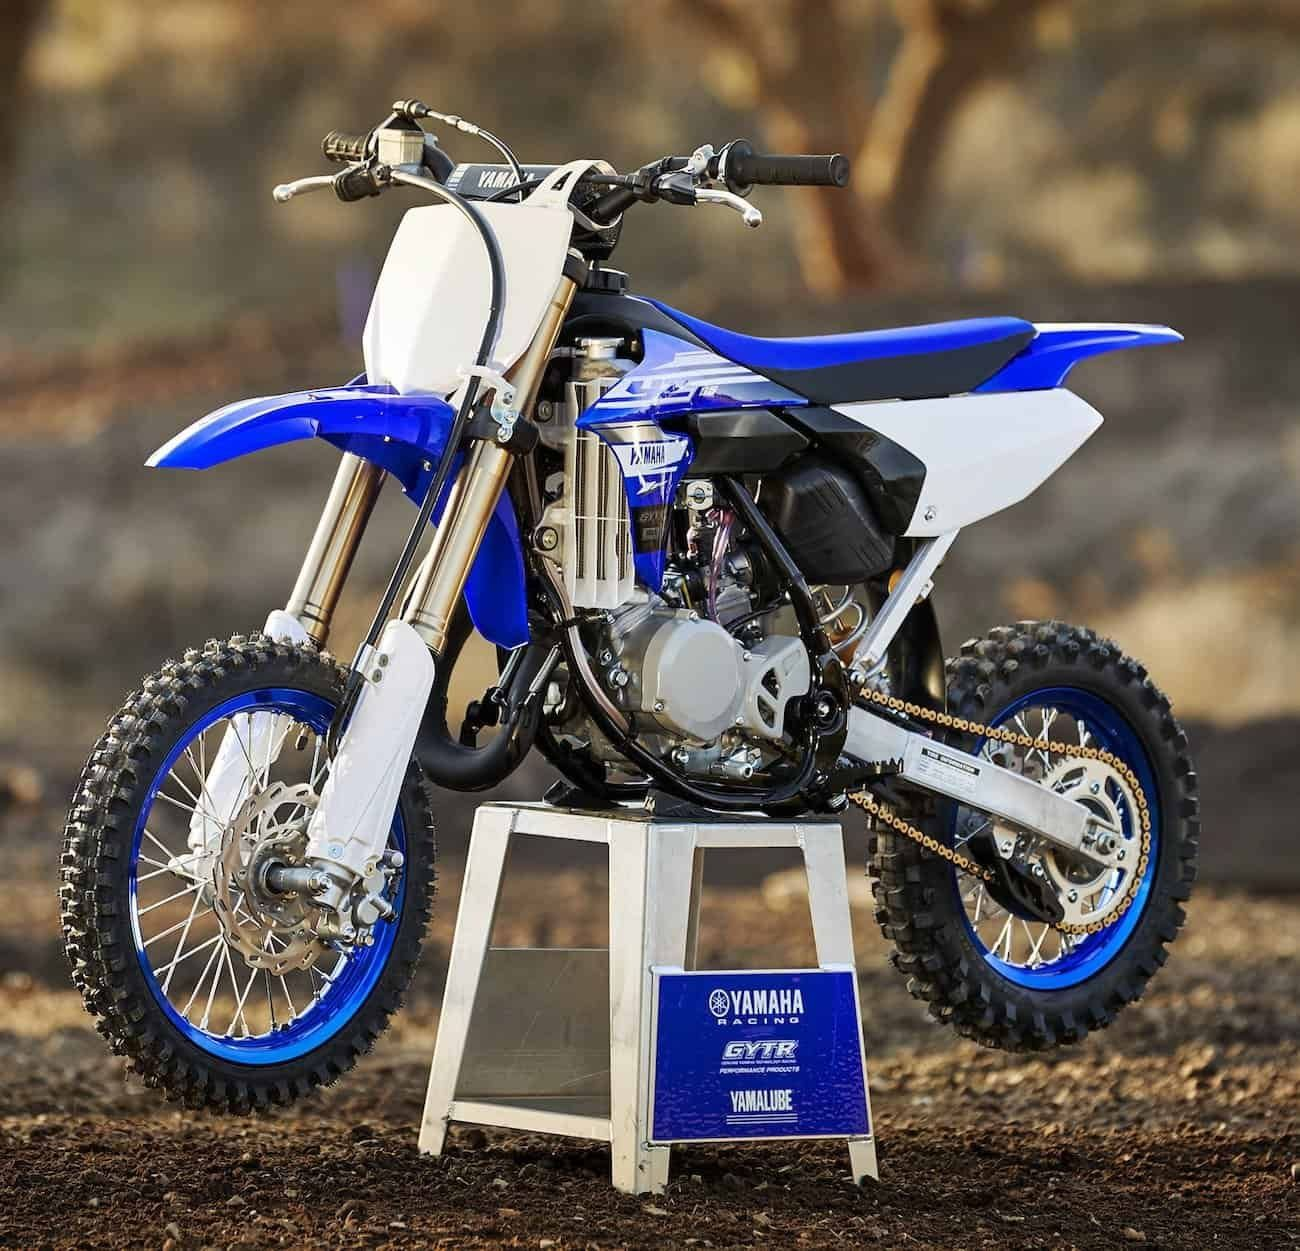 Yamaha Yz 65 2019 Price Design And Review From First Look 2018